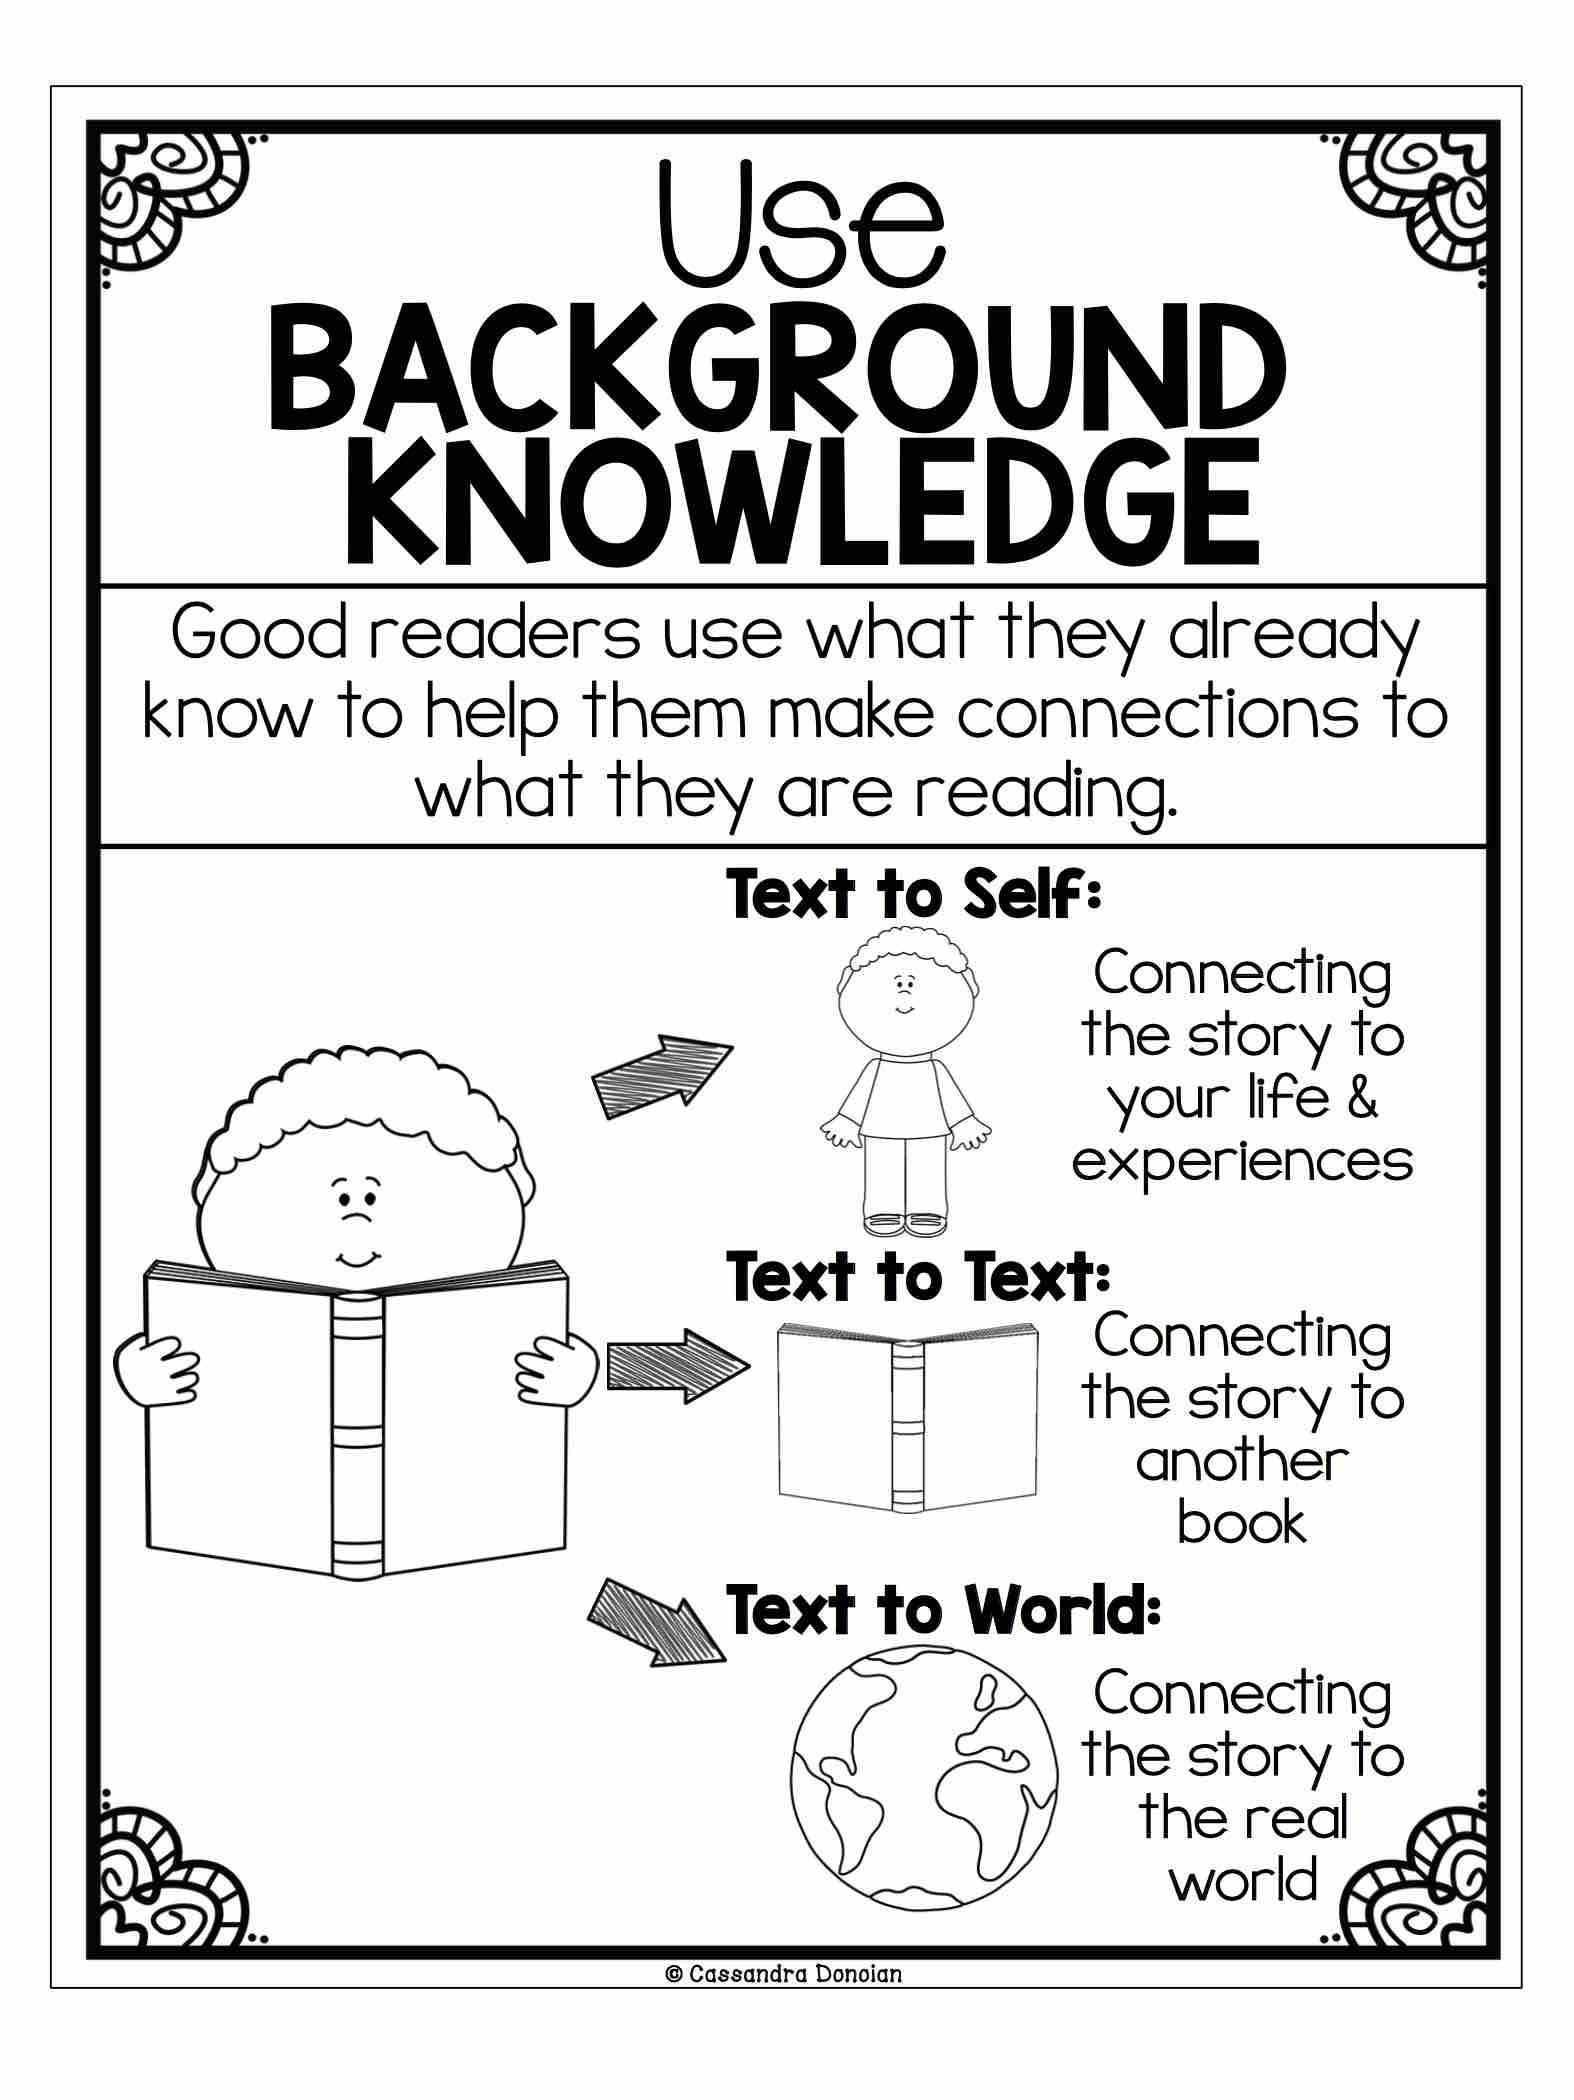 Text to Text Connections Worksheet Making Connections Graphic organizers Poster Fact and